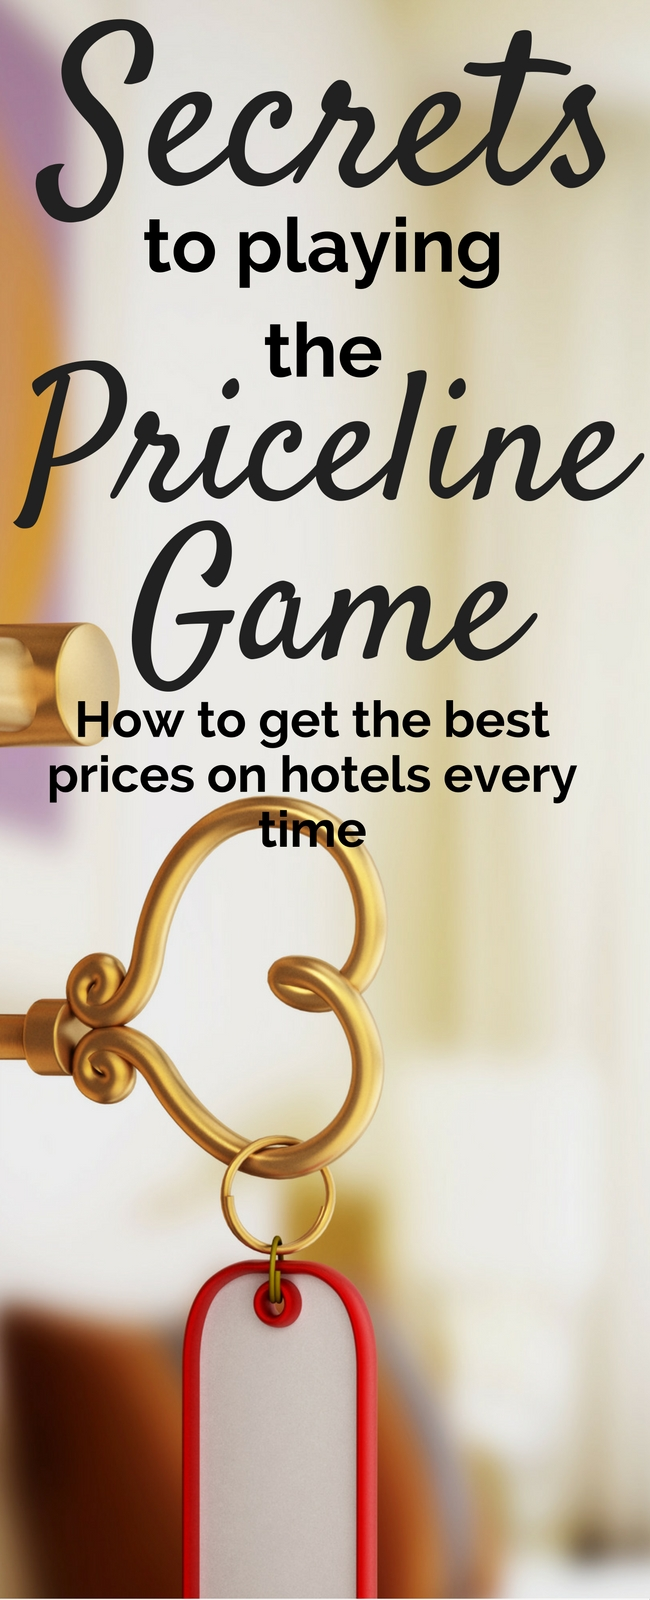 Here's how to get the best prices on hotels every time using secrets from this mom who always gets the best deal! via @clarkscondensed